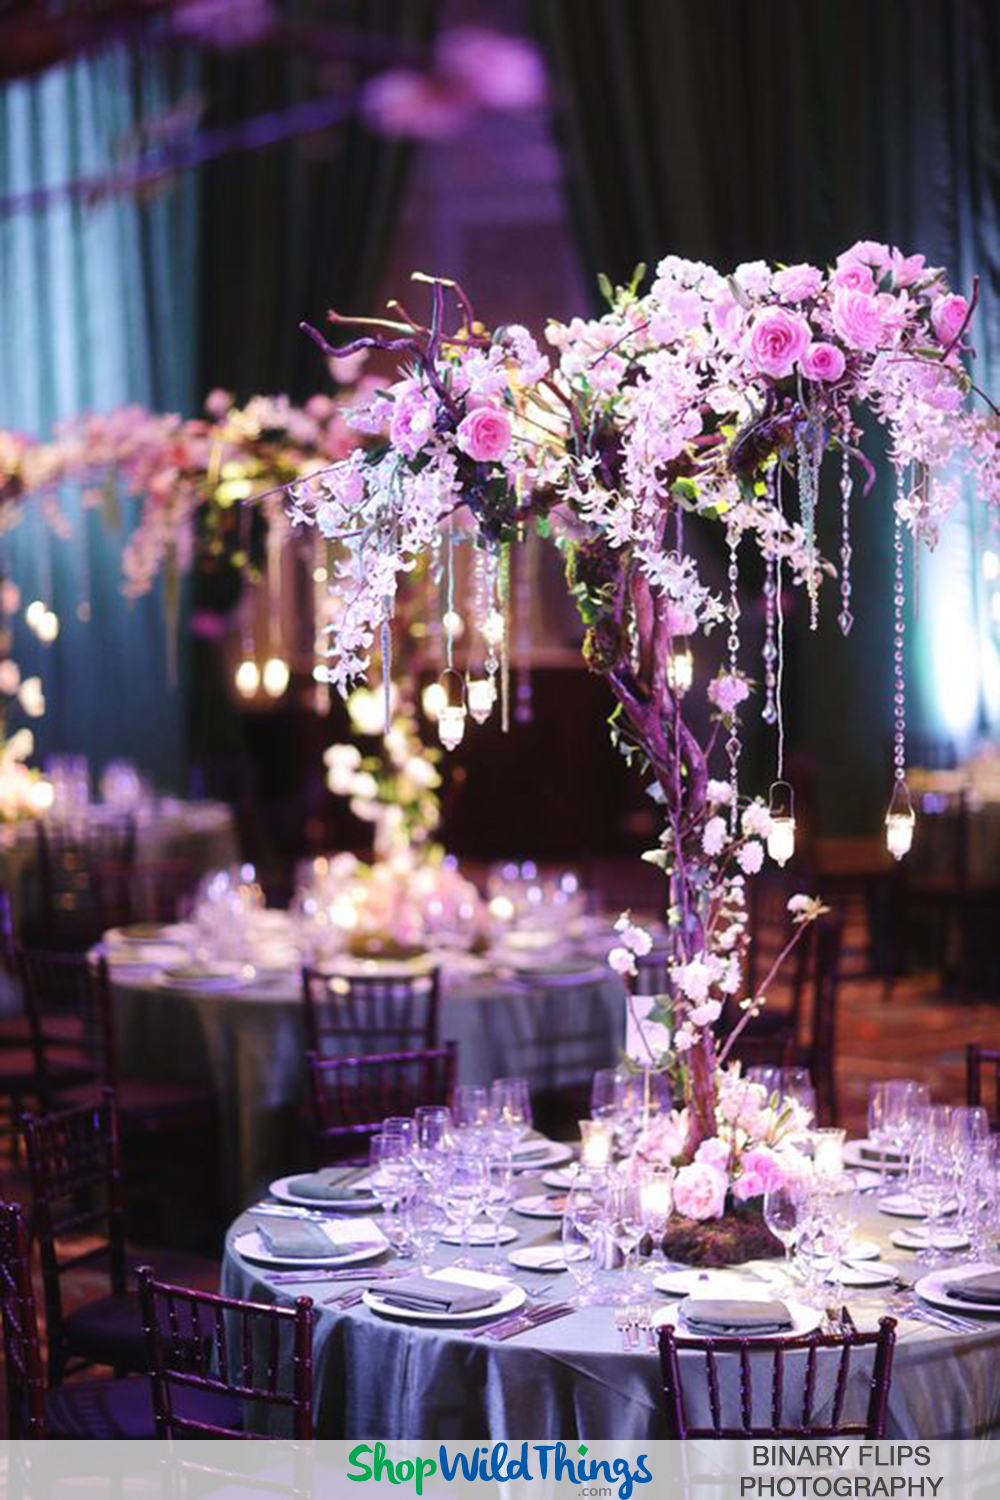 See How Top Designers Use These Must-Have Elements for Serious Centerpieces